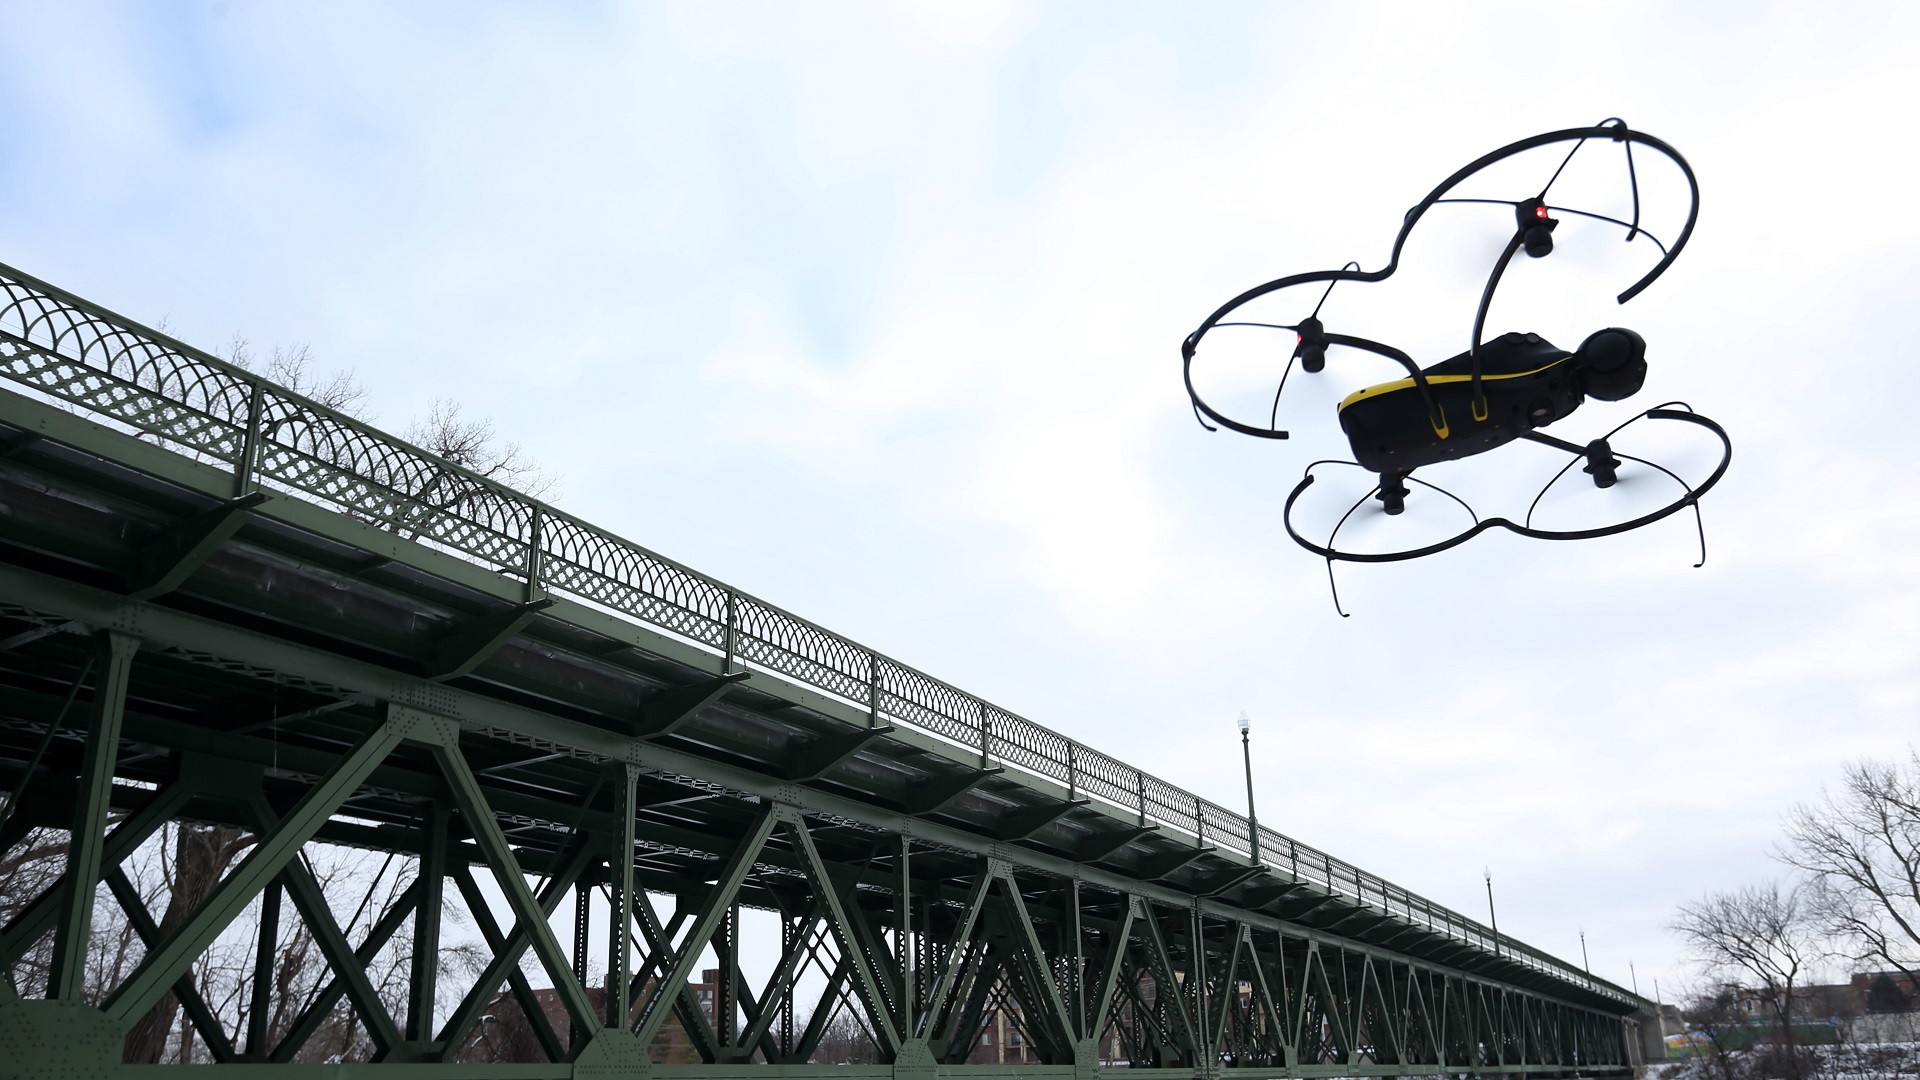 drones_bridge inspection_drone uses